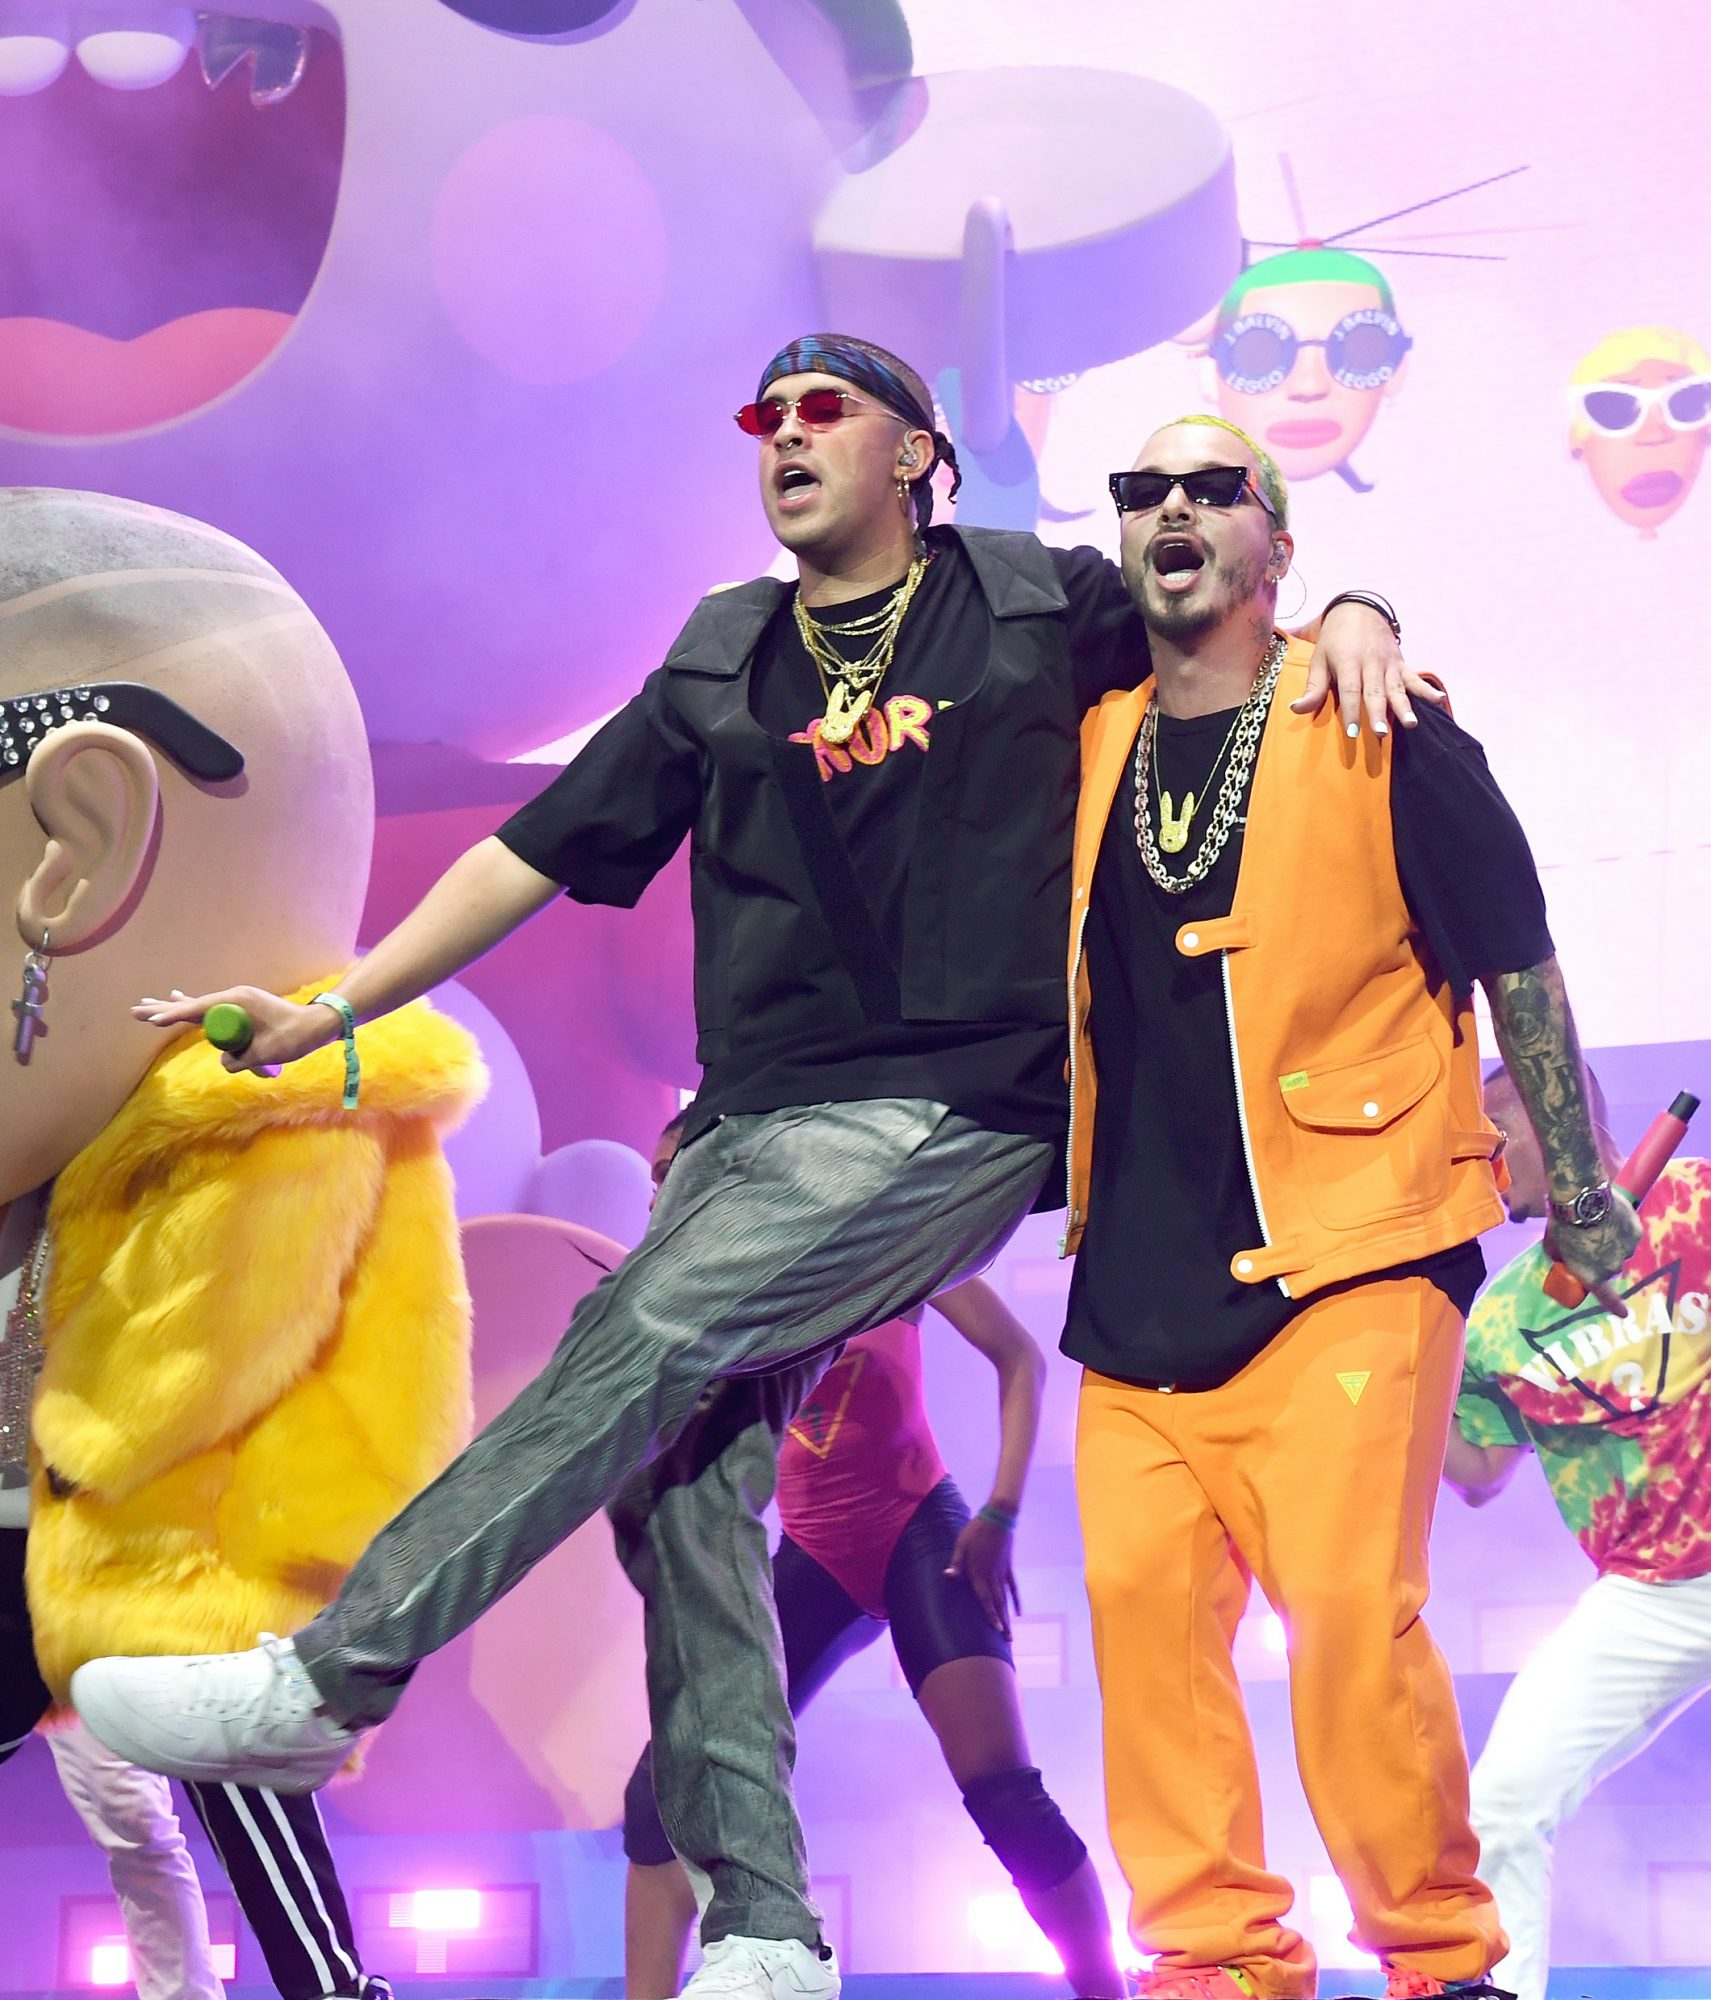 2019 Coachella Valley Music And Arts Festival - Weekend 2 - Day 2